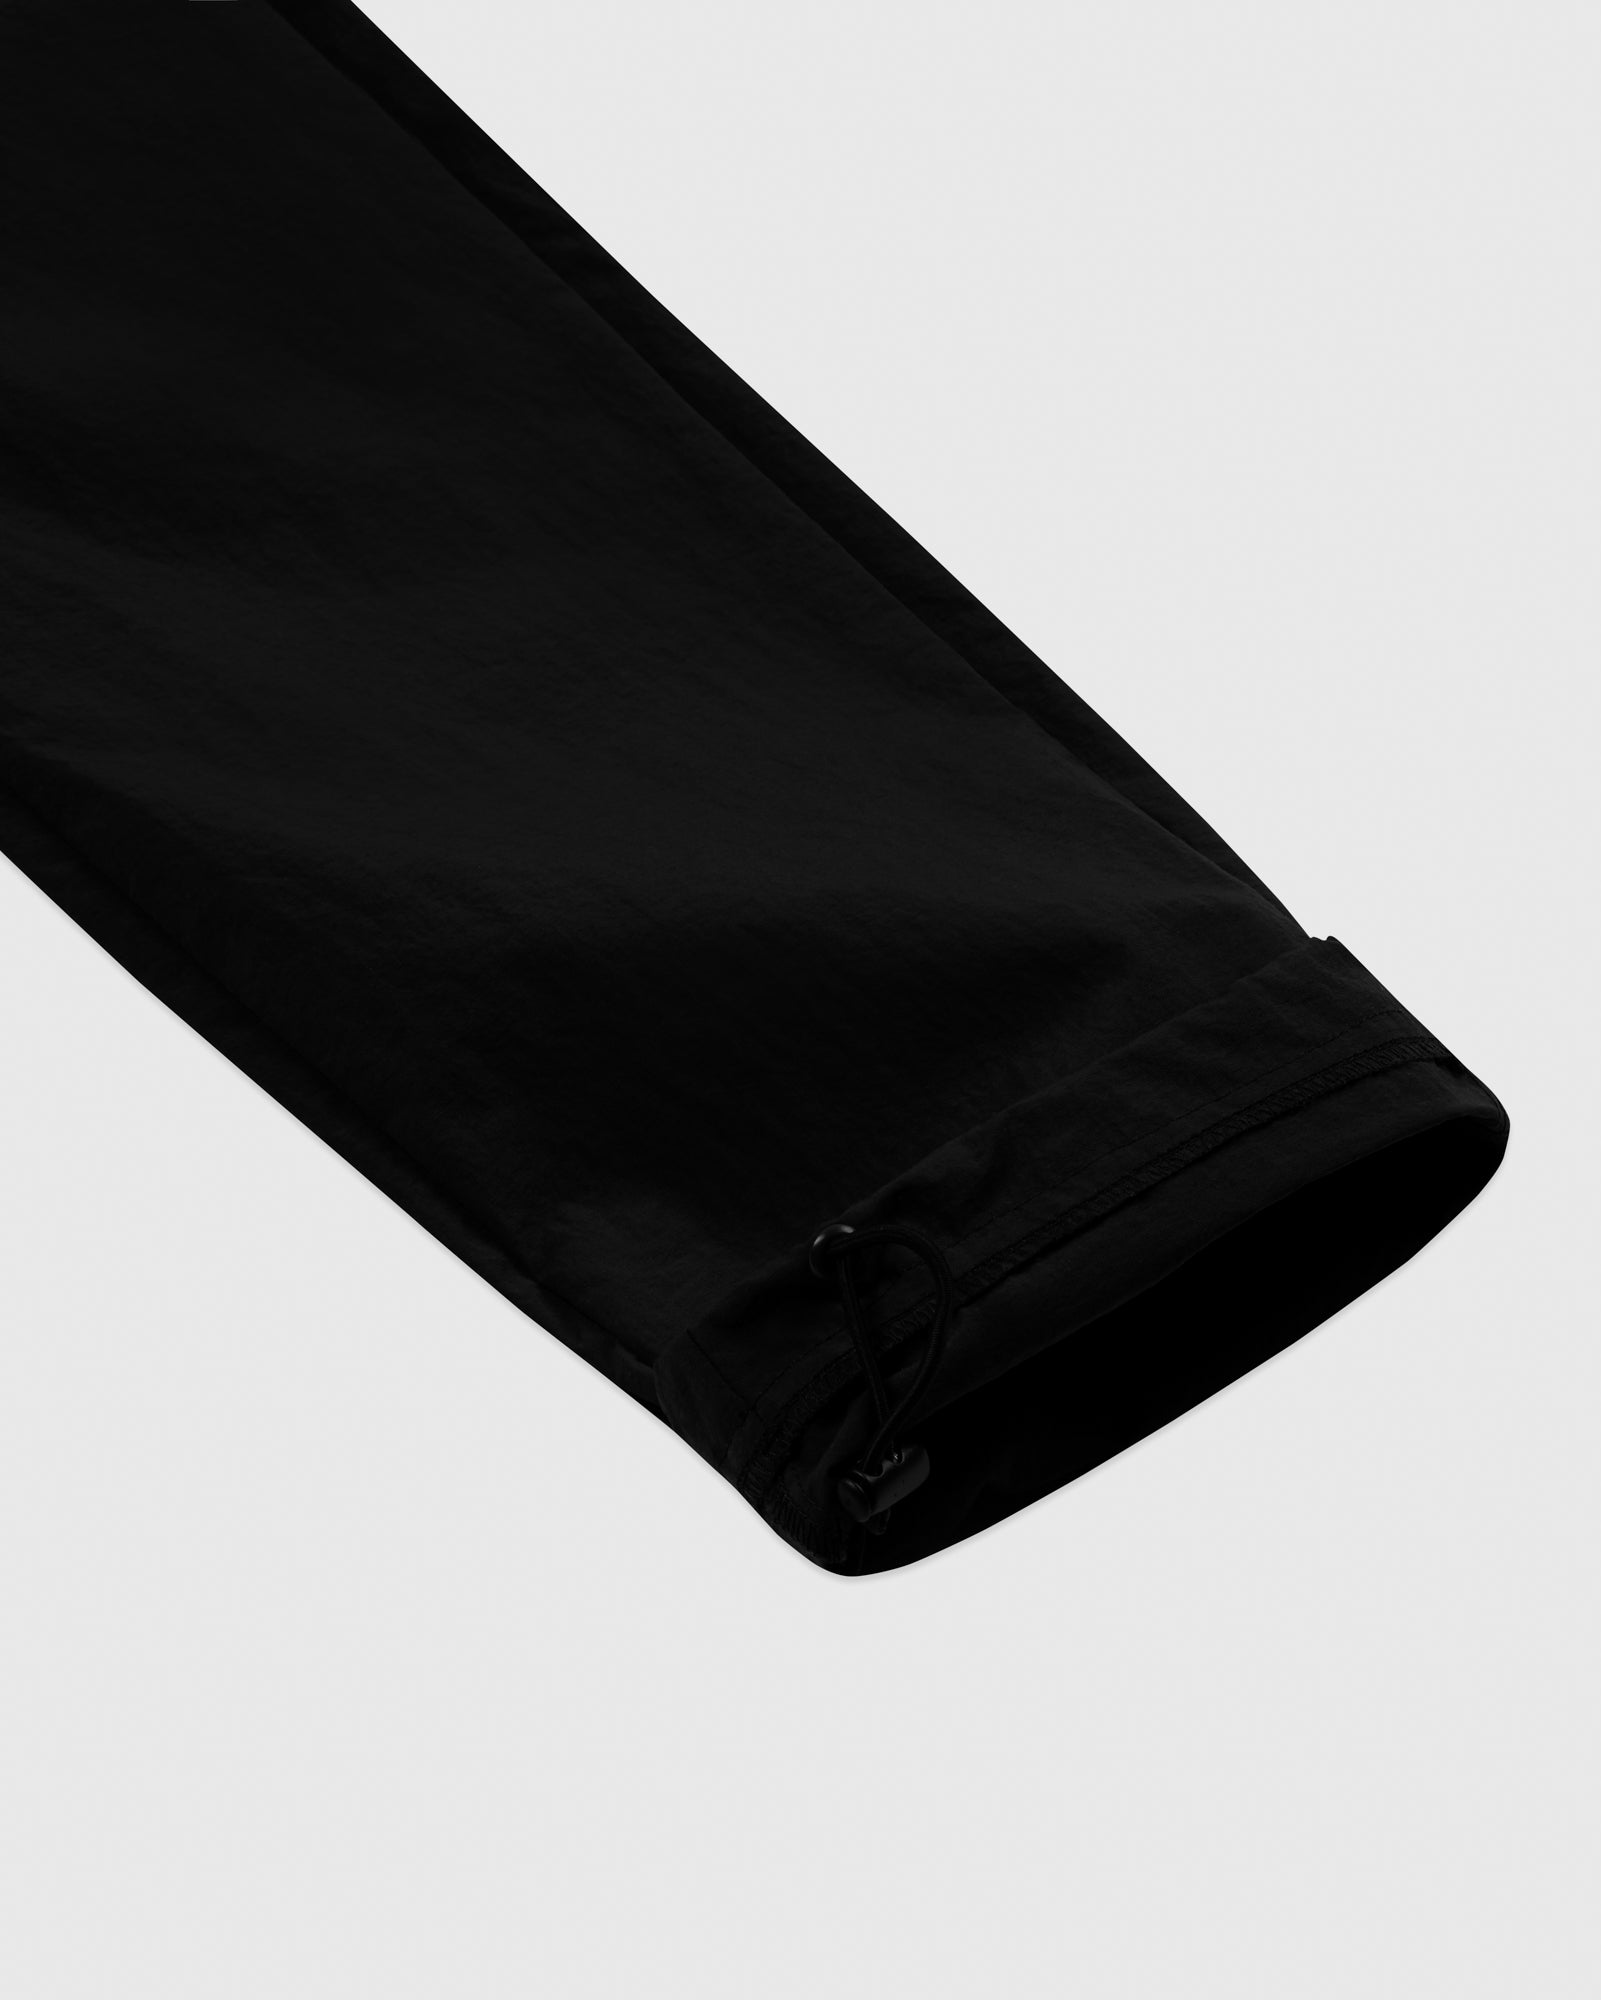 TASLAN ZIP POCKET PANT - BLACK IMAGE #5